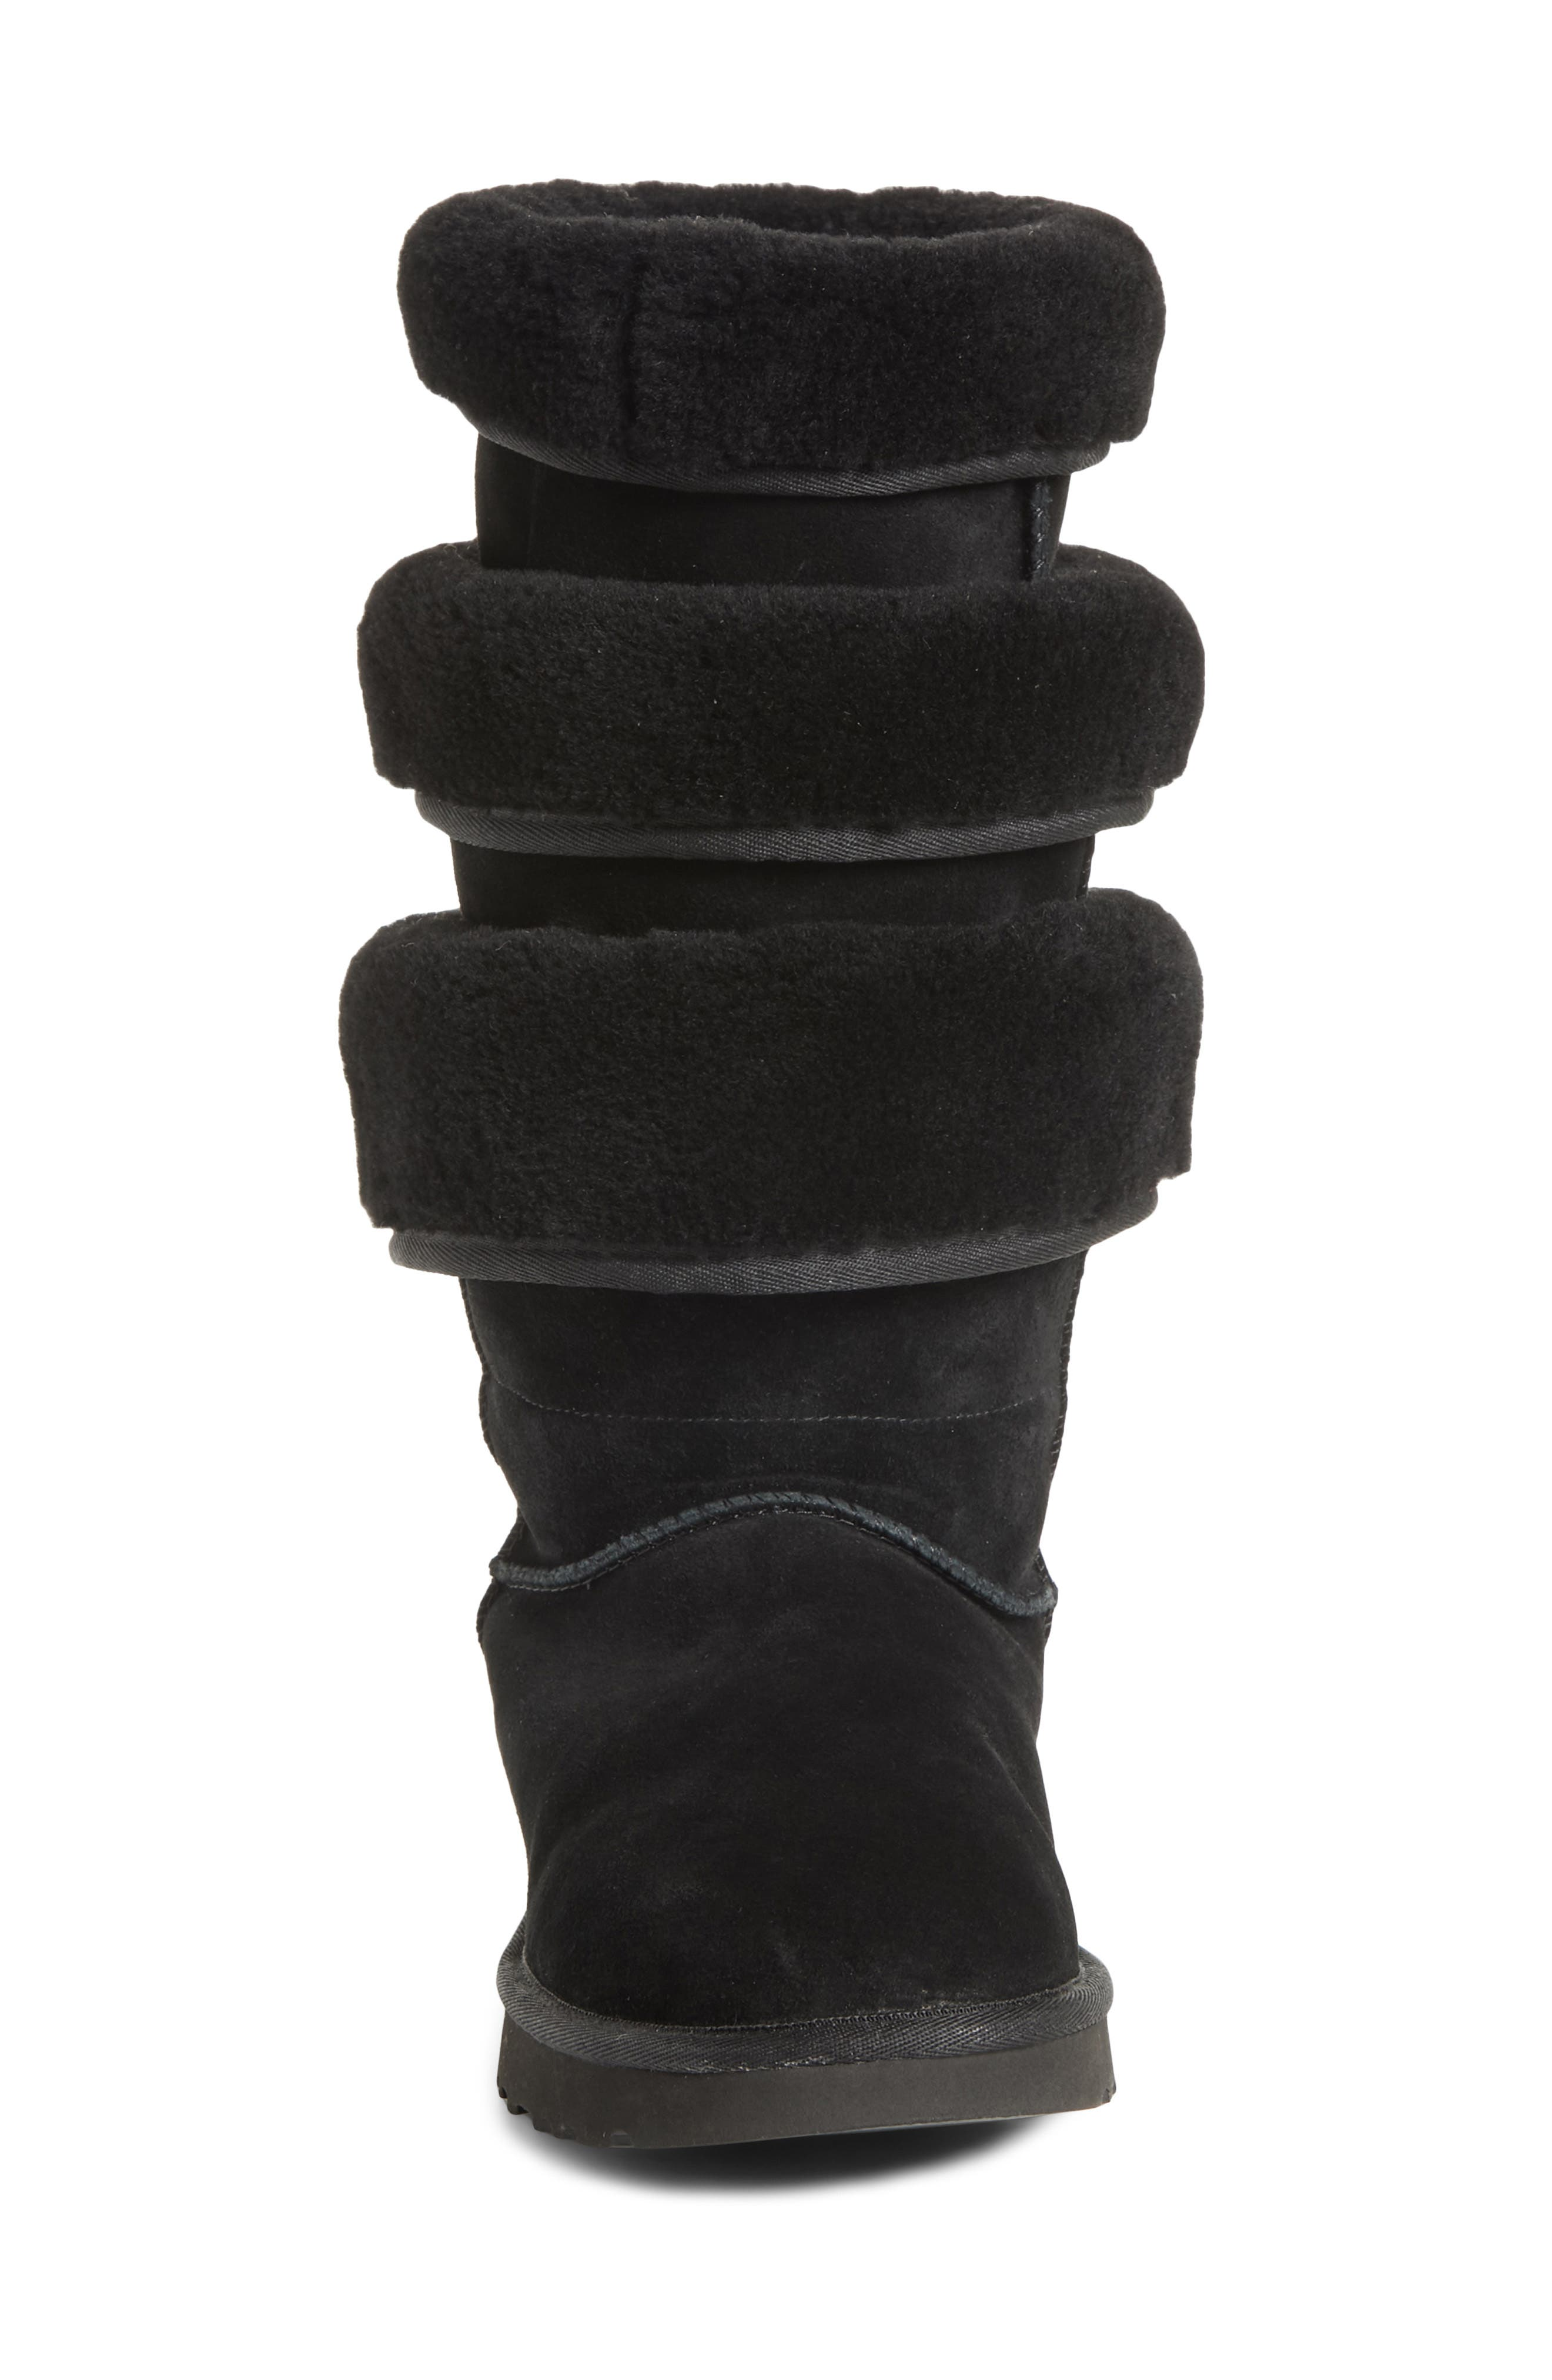 x UGG<sup>®</sup> Layered Boot,                             Alternate thumbnail 4, color,                             NOIR